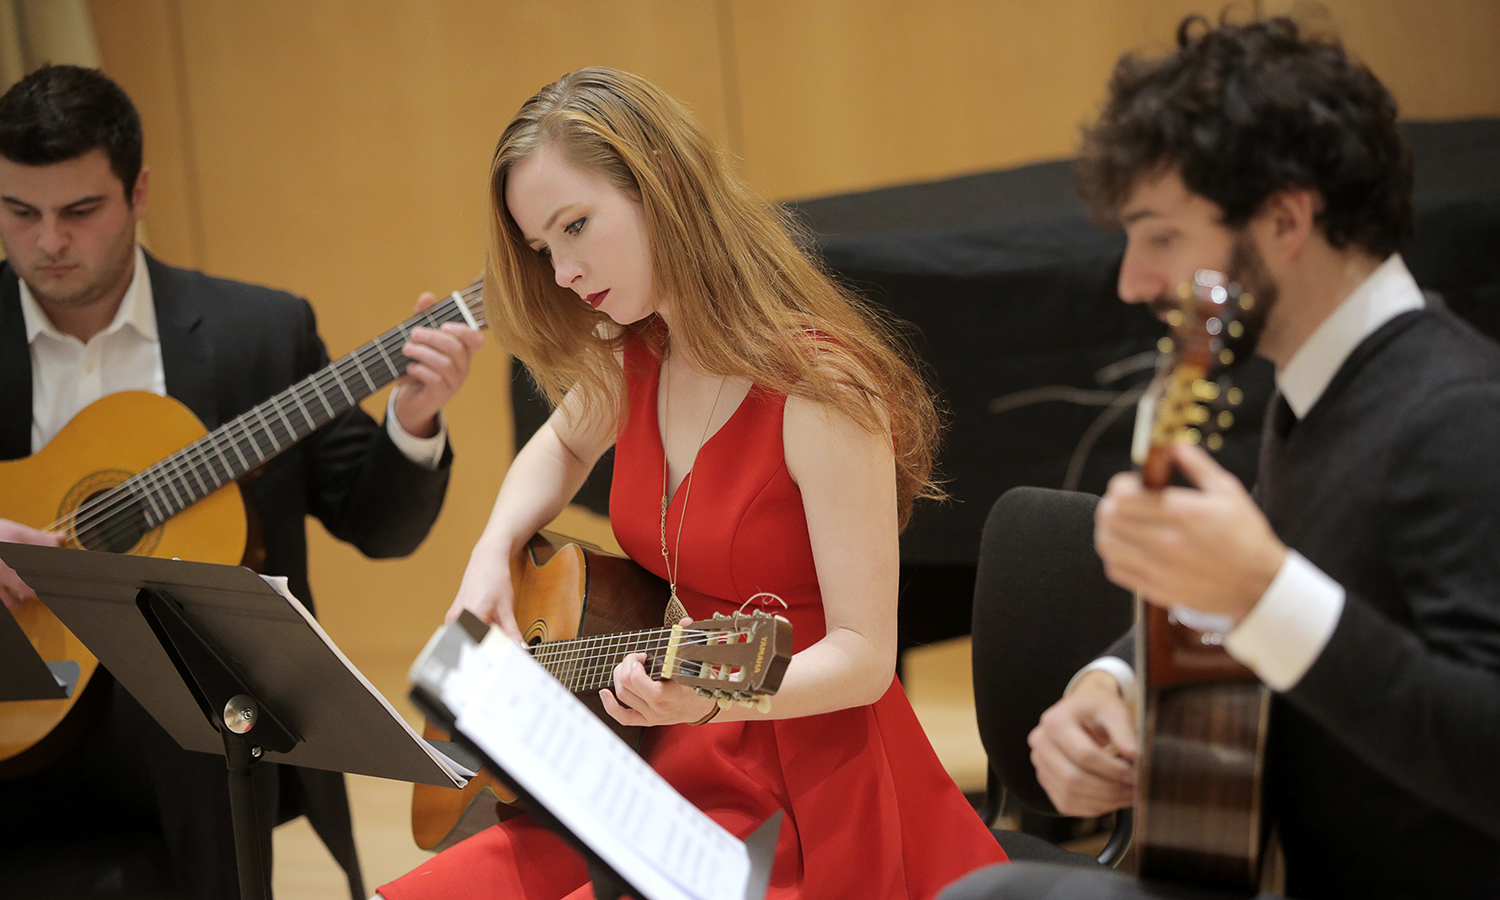 The Classical Guitar Ensemble, directed by Ben Ellis, performs in Froelich Hall.